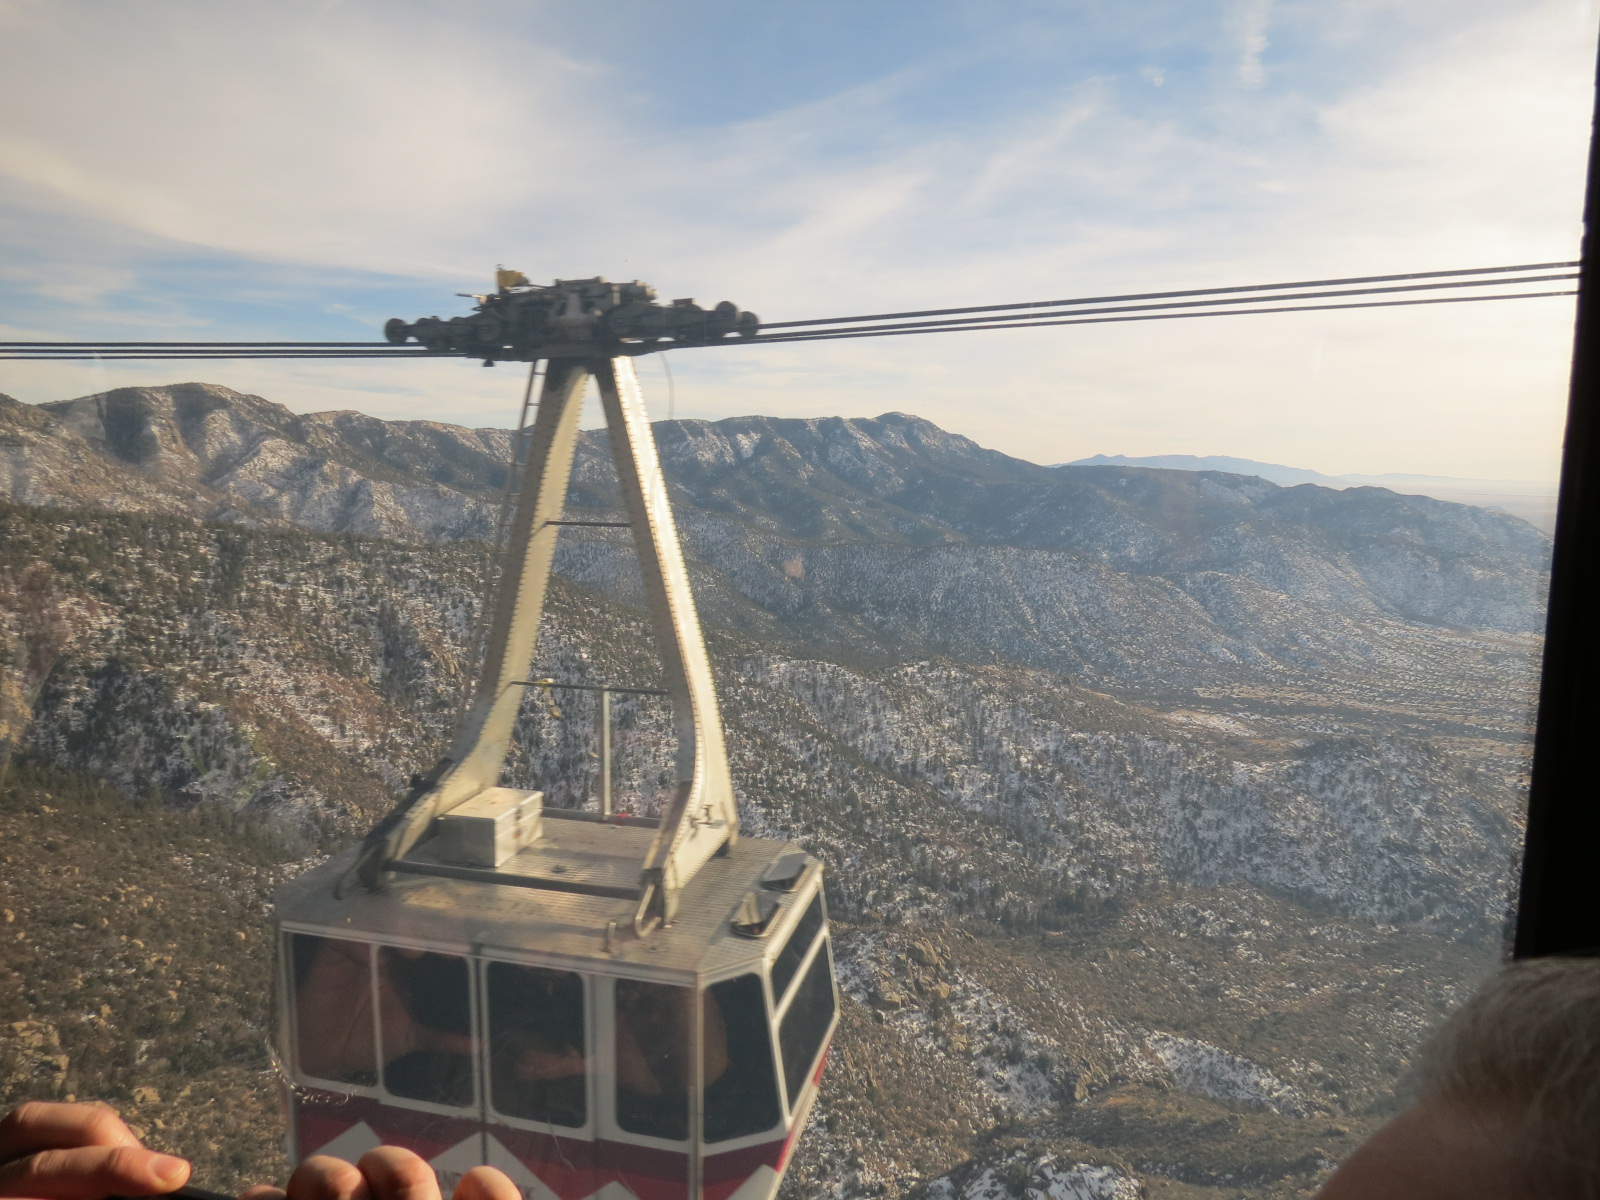 A Tram going down the Sandia Mountain